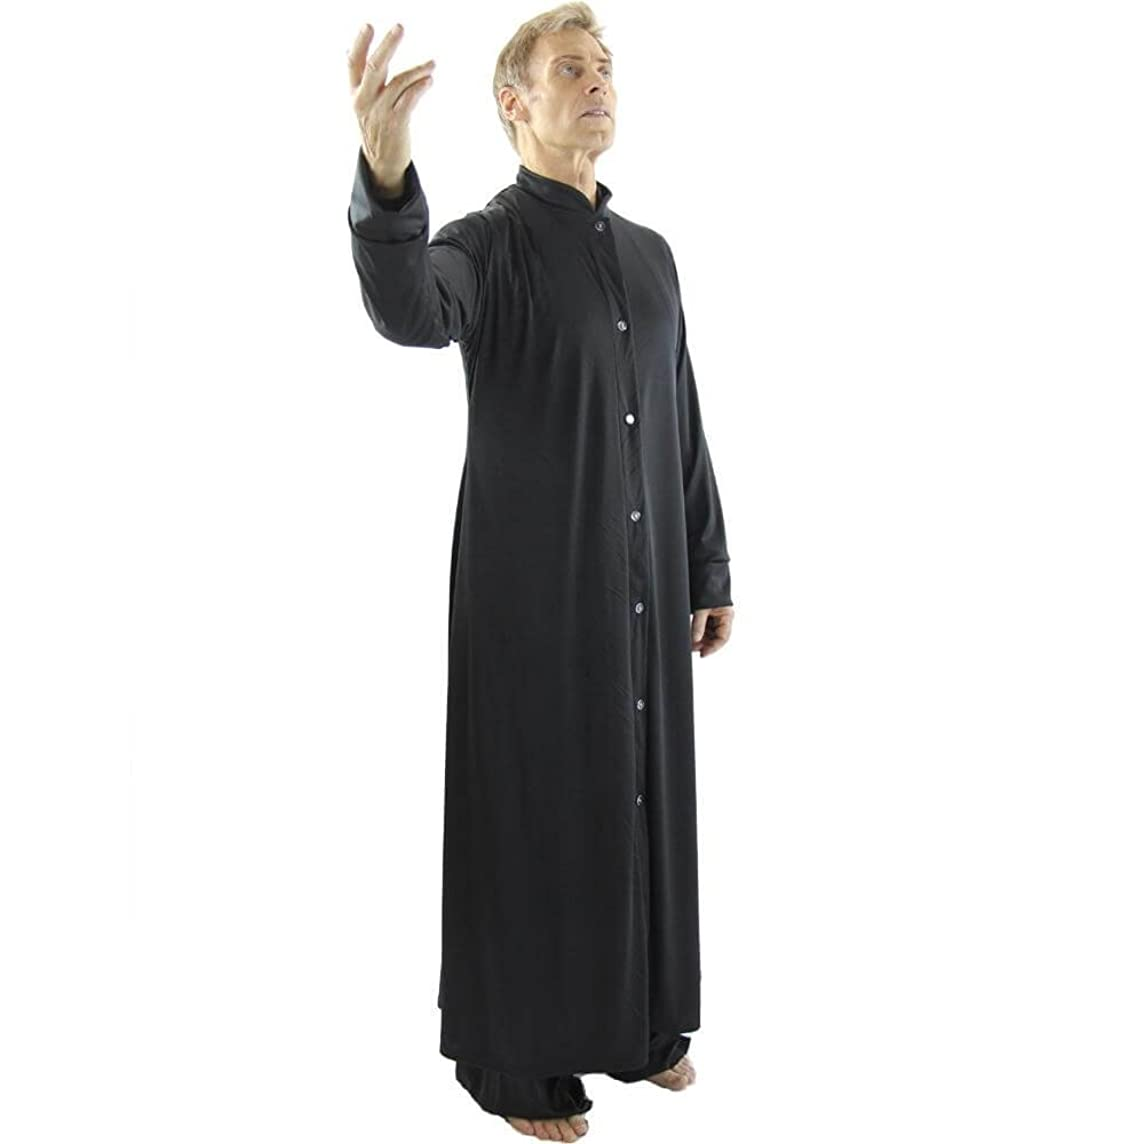 Danzcue Mens Praise Worship Dance Robe with Stand-up Collar